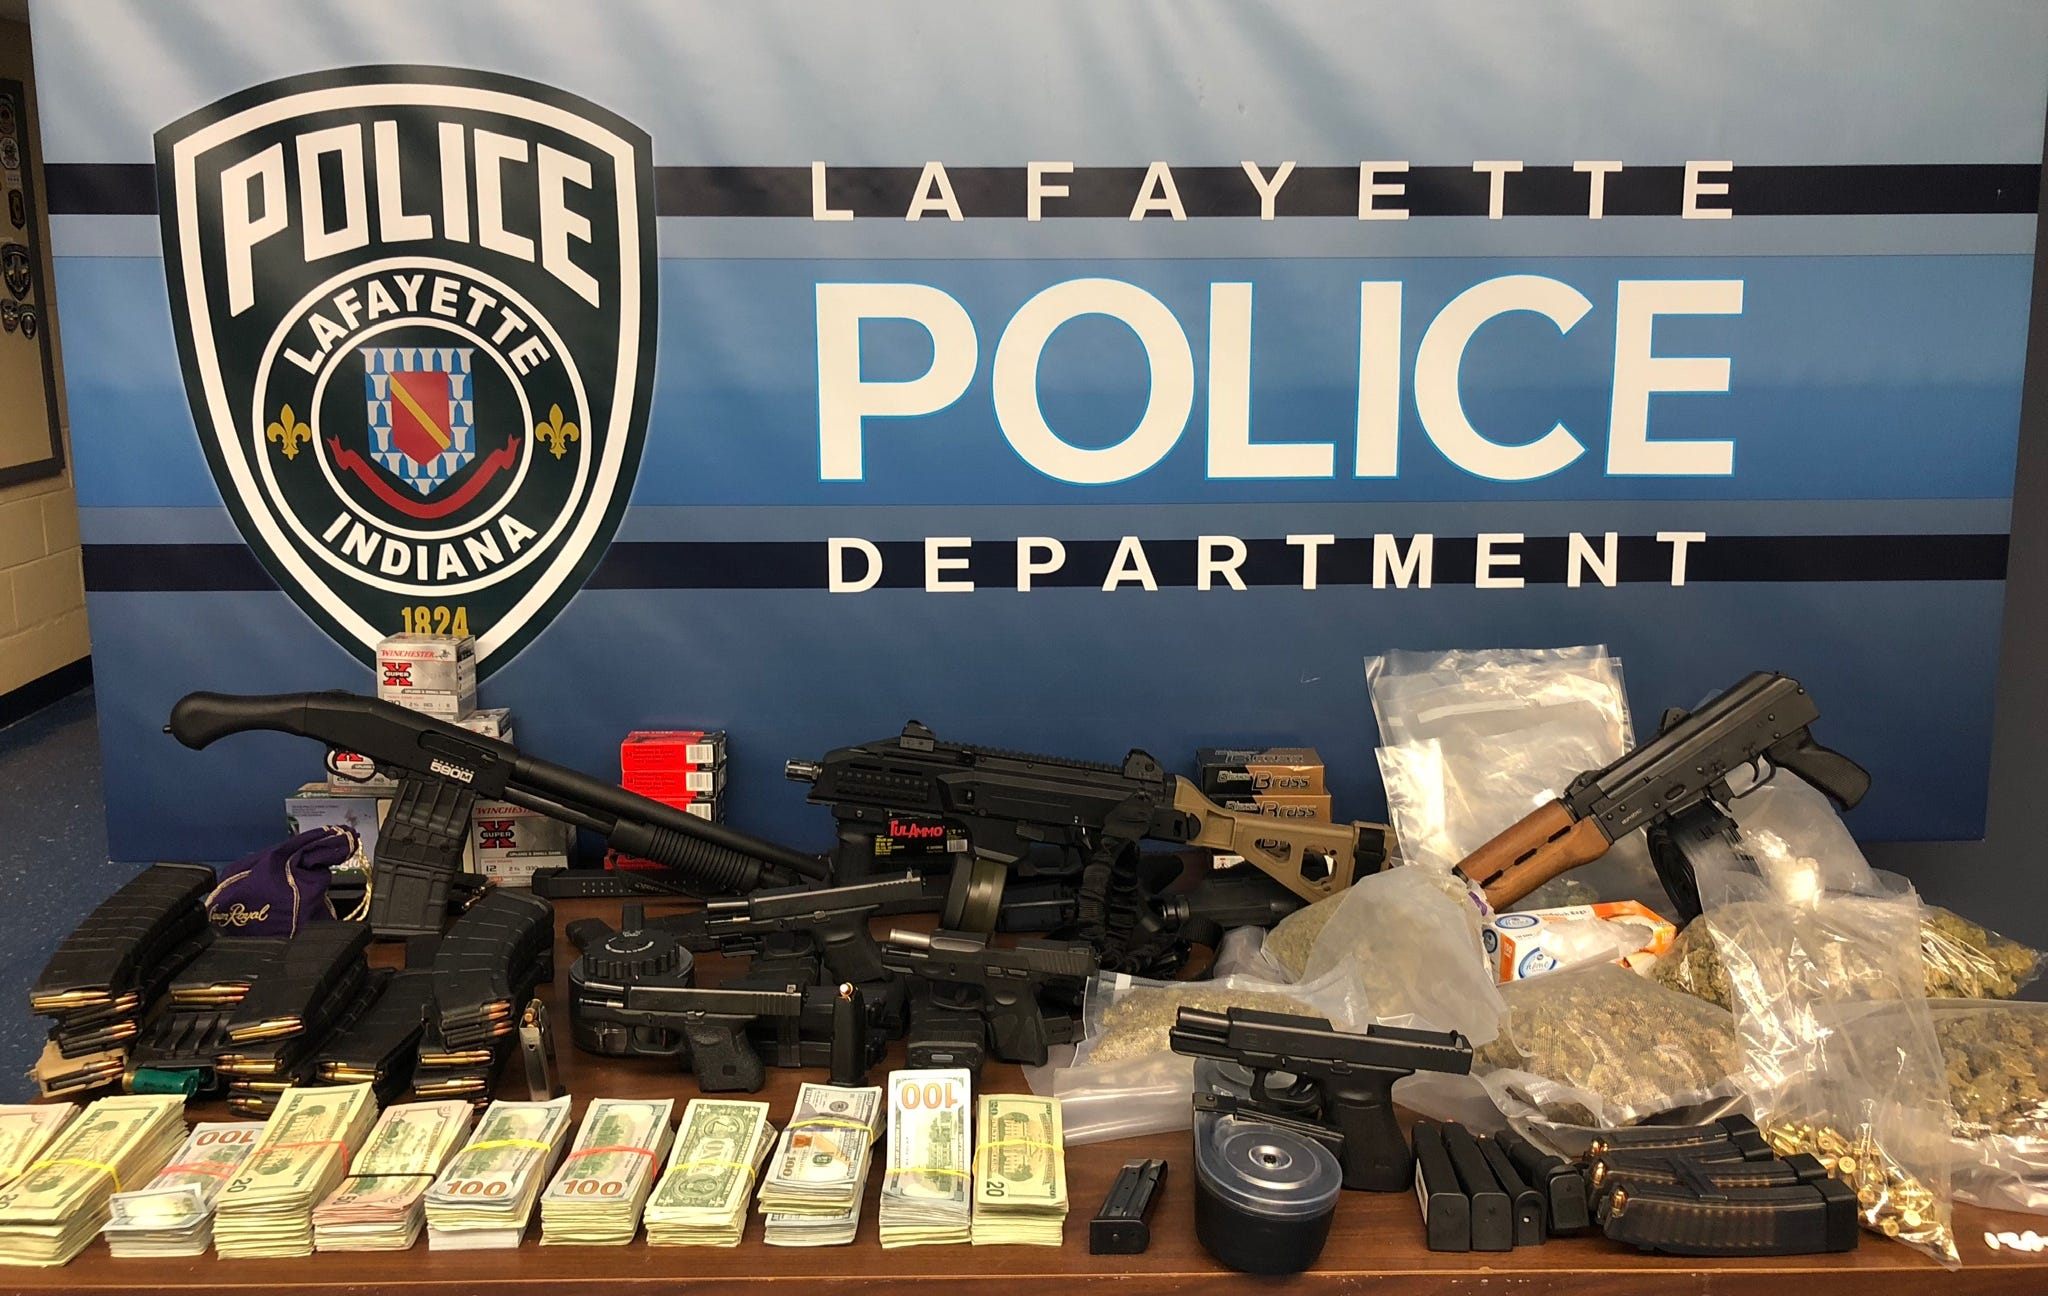 Police checking on the well being of children found more than $68,000, four pounds of marijuana and seven firearms with a cache of ammunition.